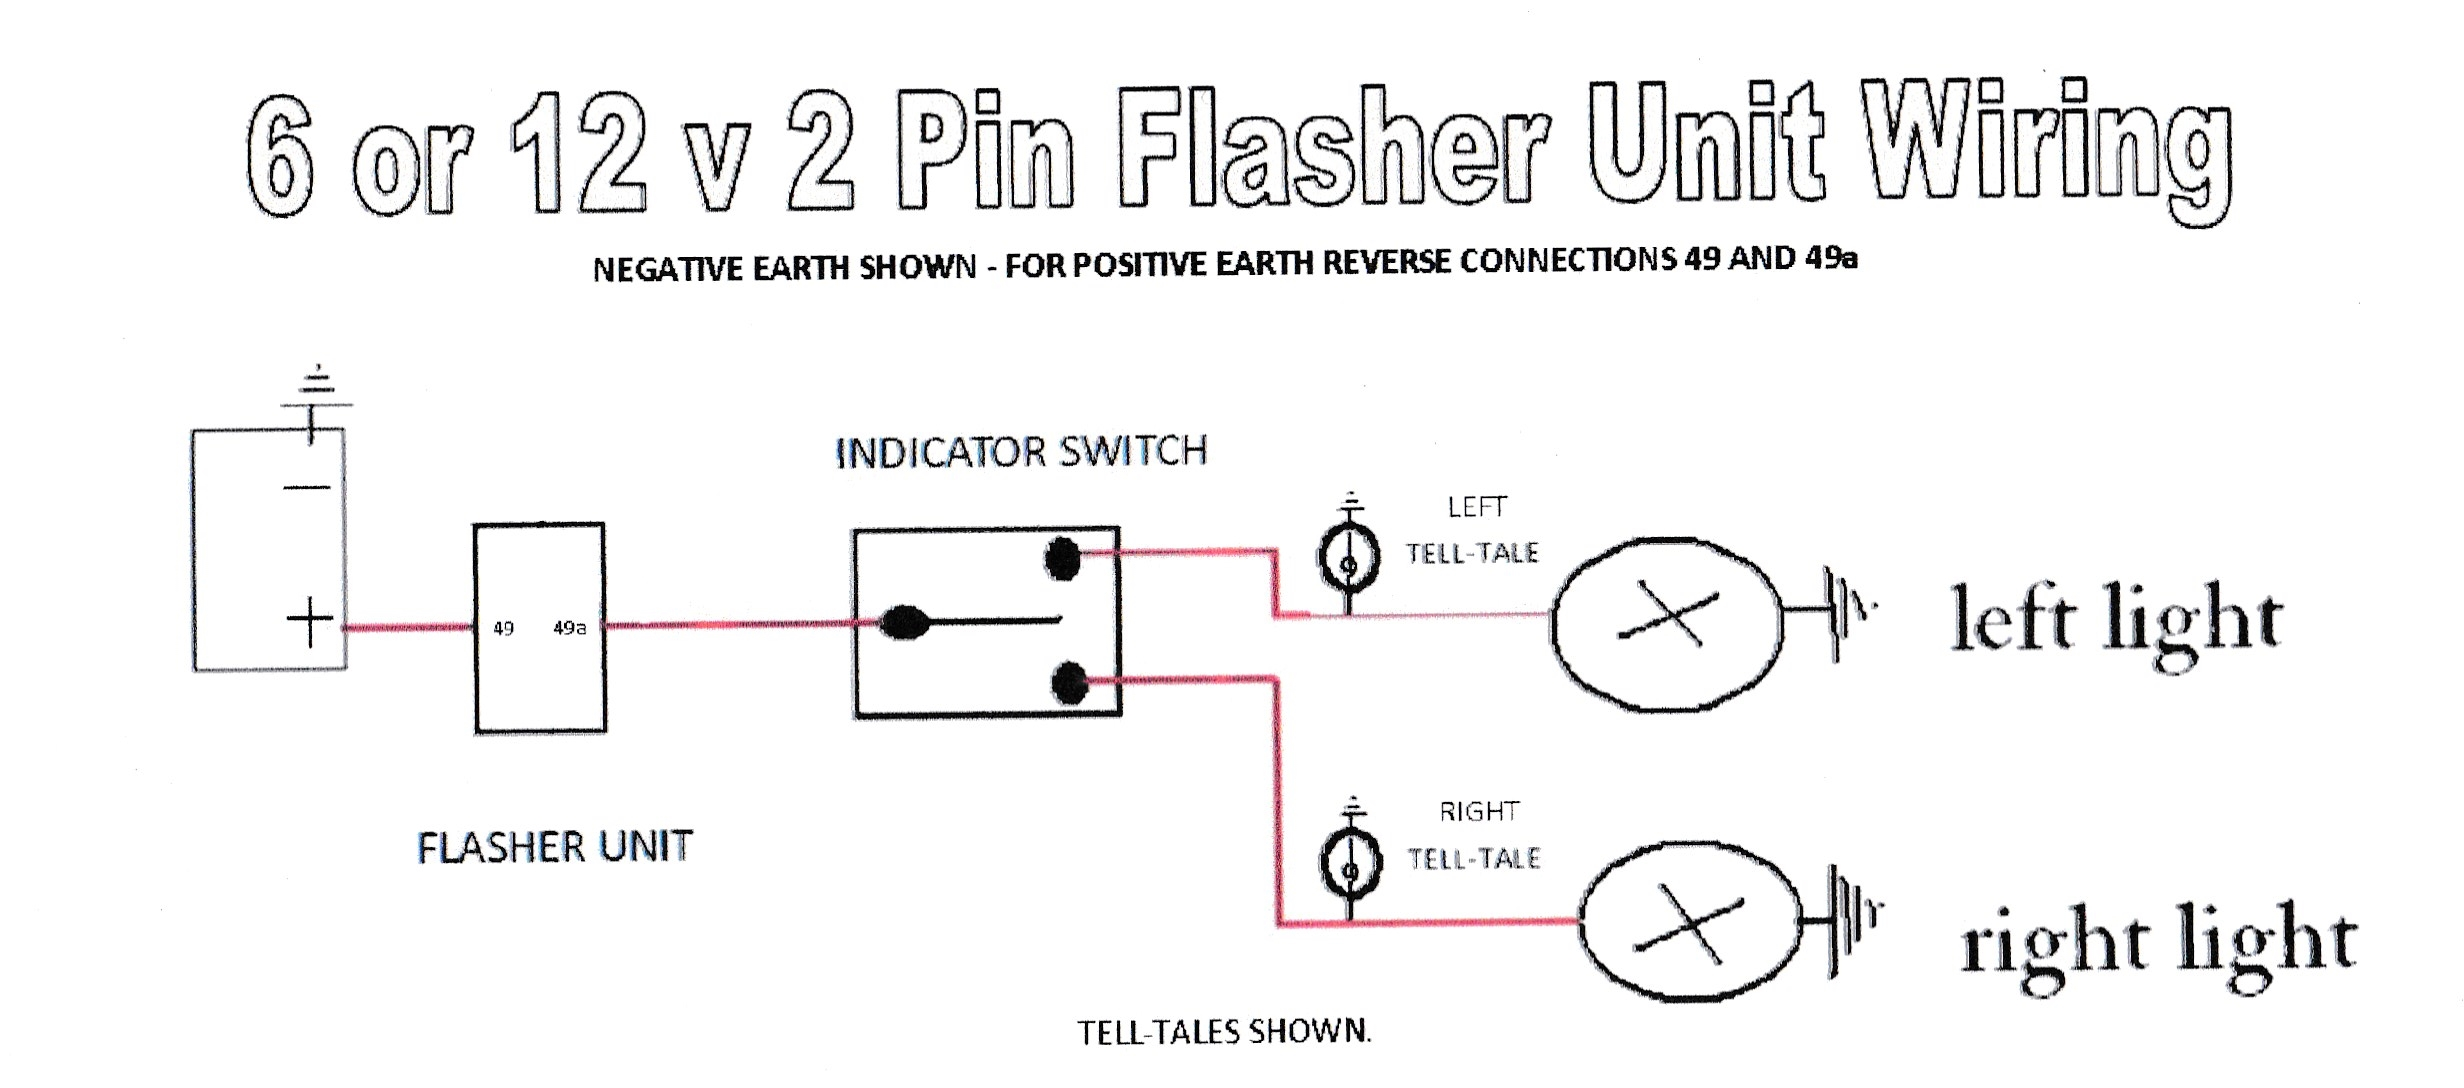 IMG_20150323_0001_NEW wiring diagrams to assist you with connecting up flasher unit wiring diagram at panicattacktreatment.co